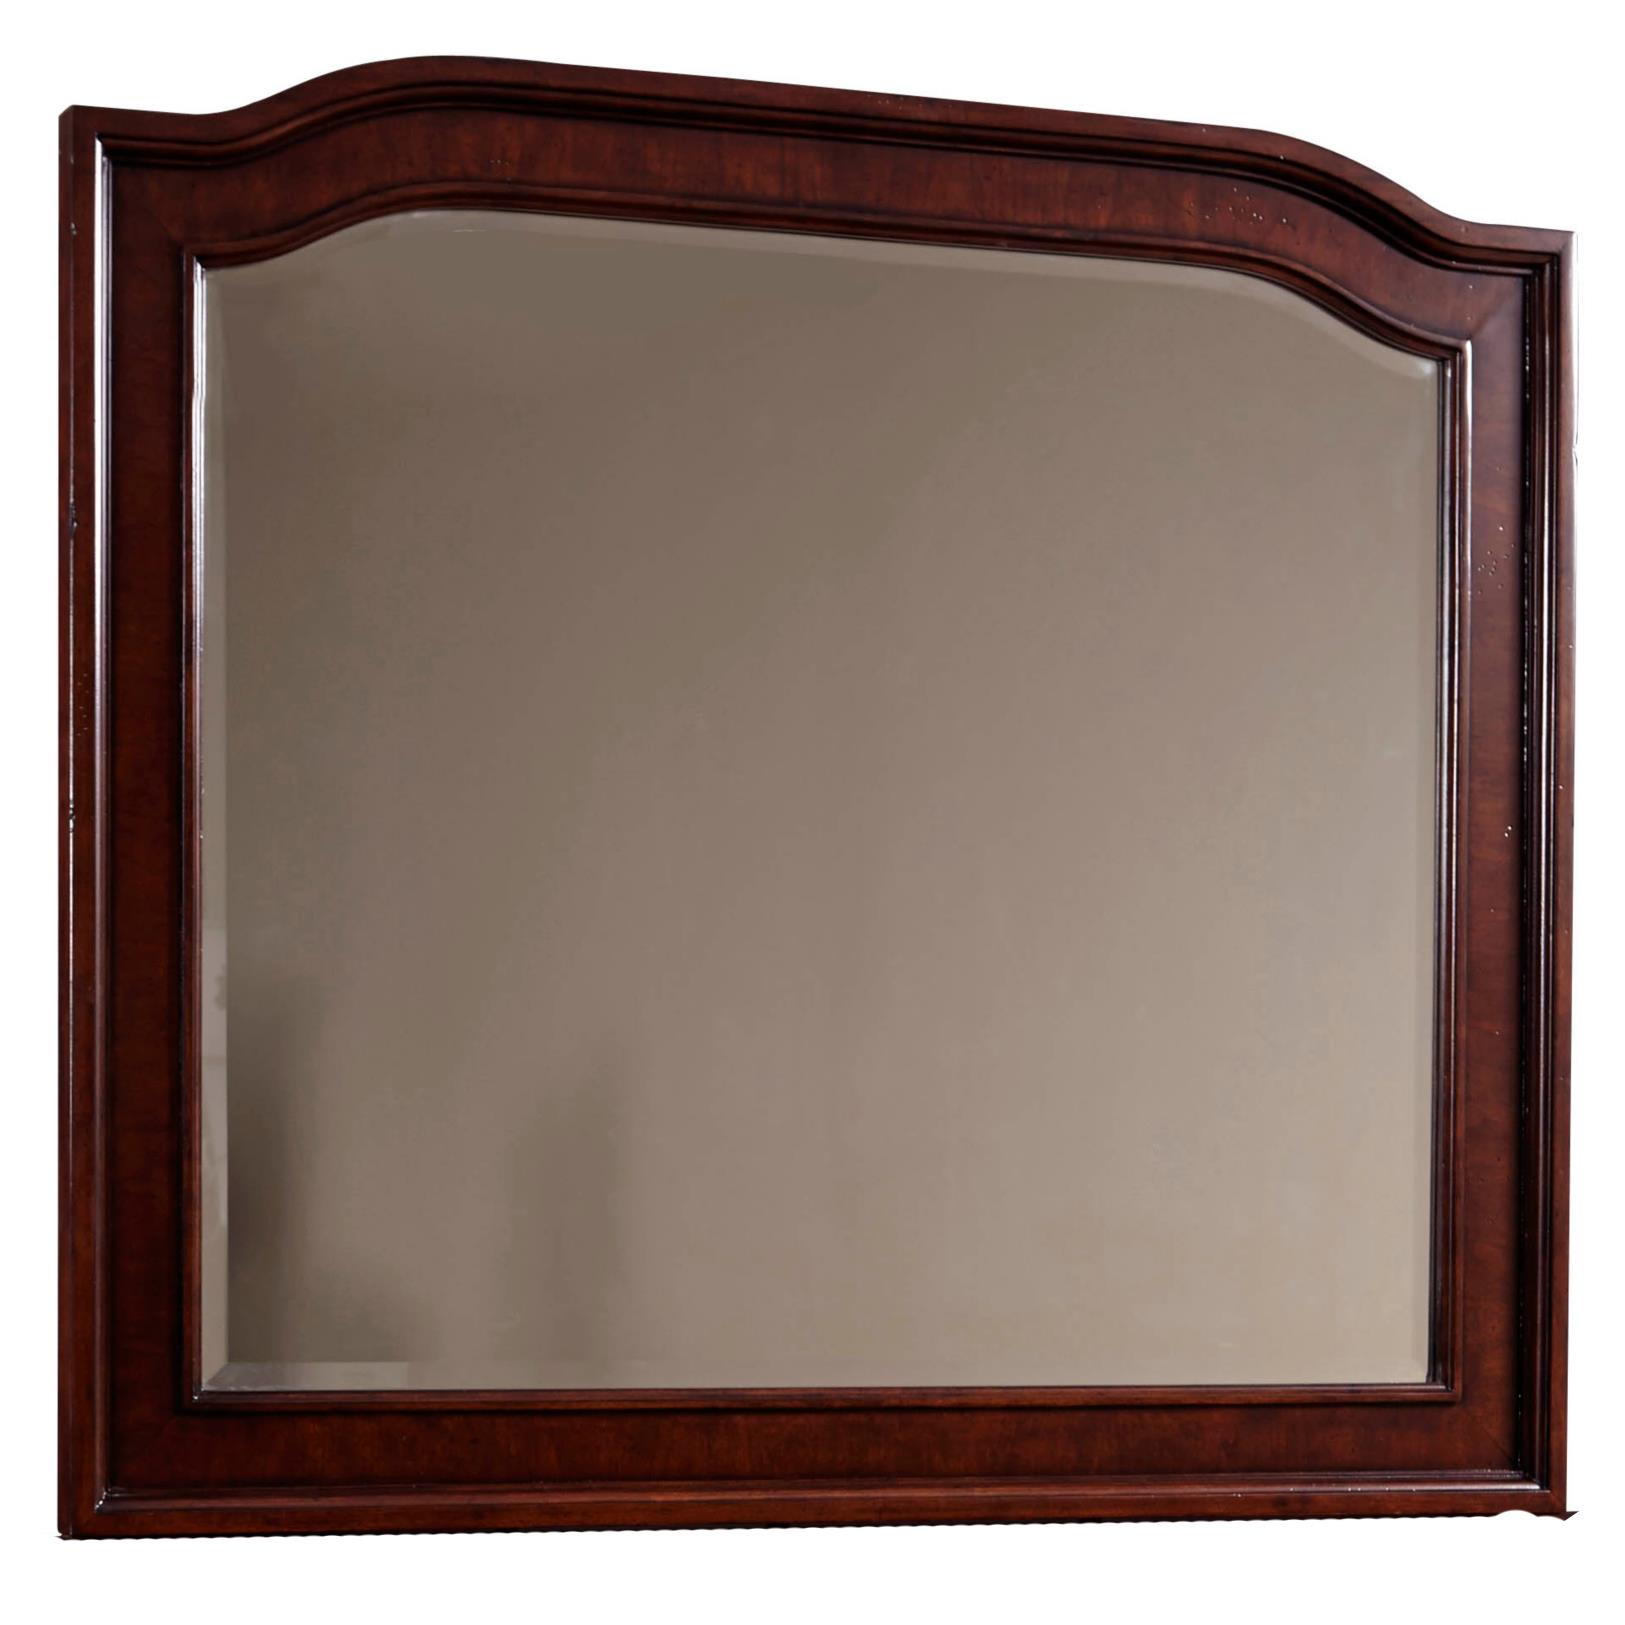 Broyhill Furniture Elaina Landscape Mirror - Item Number: 4640-237